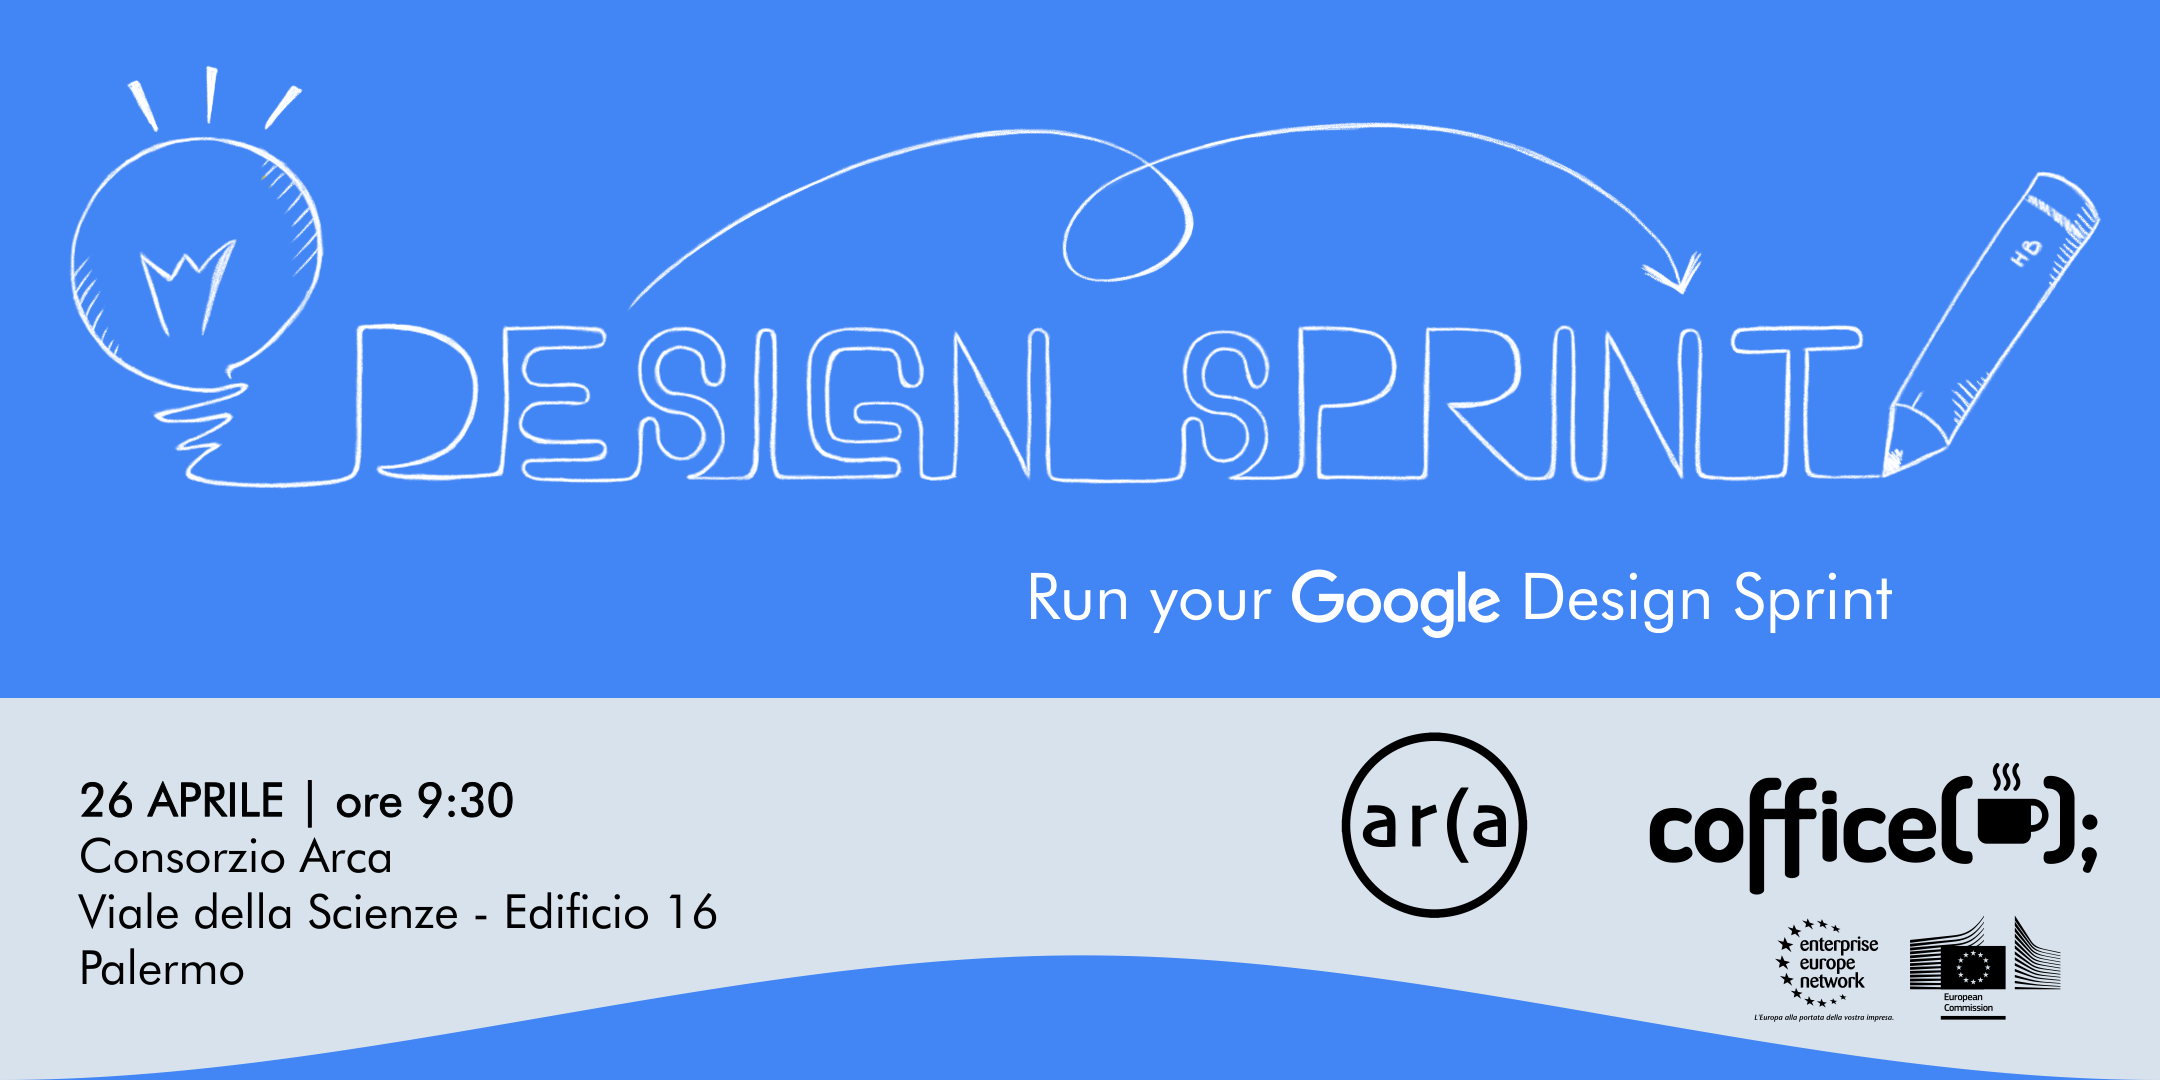 Run your Google Design Sprint